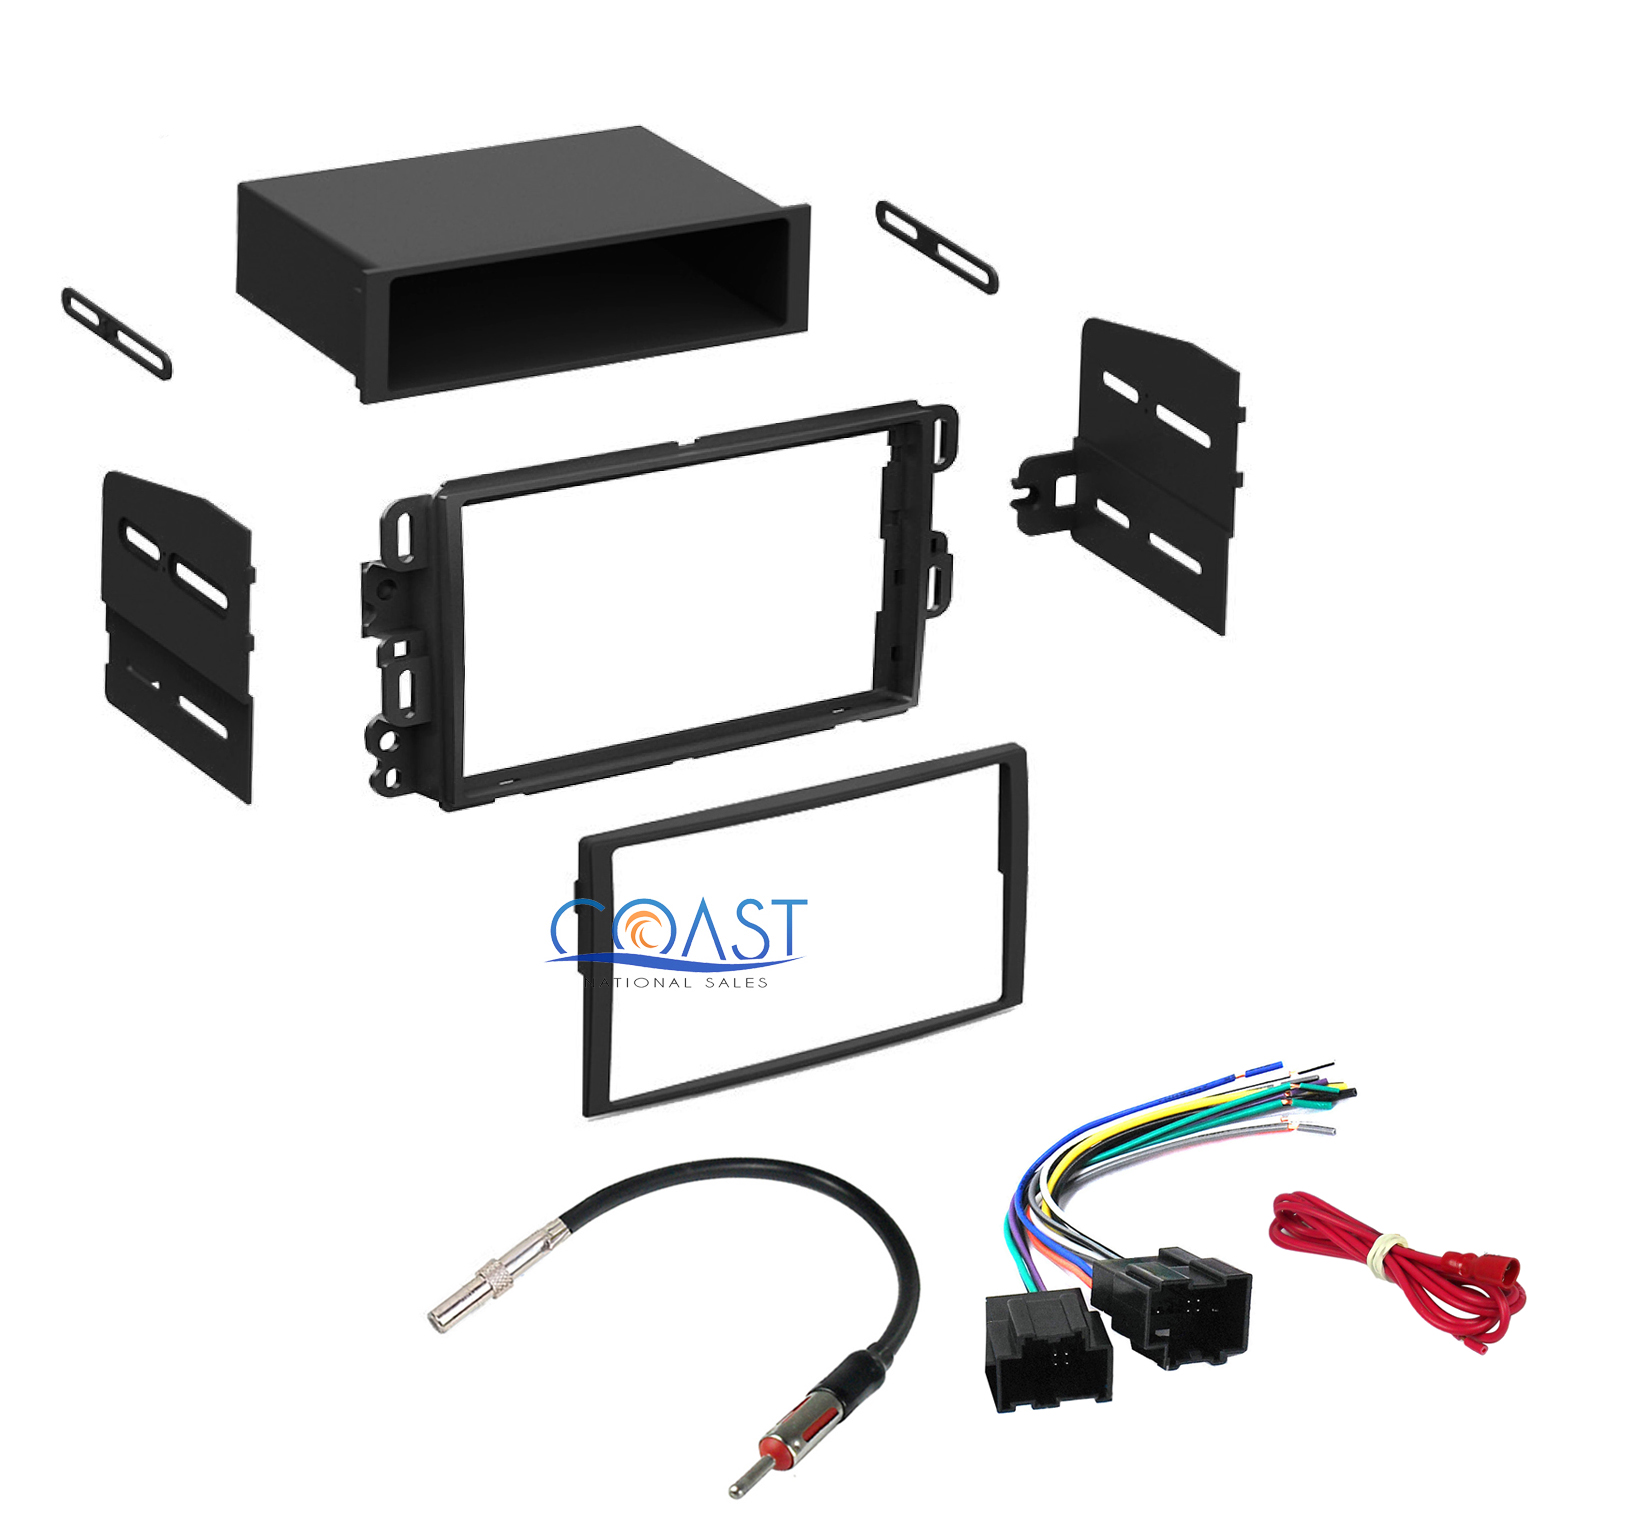 Xscorpion car stereo mounting dash kit 11